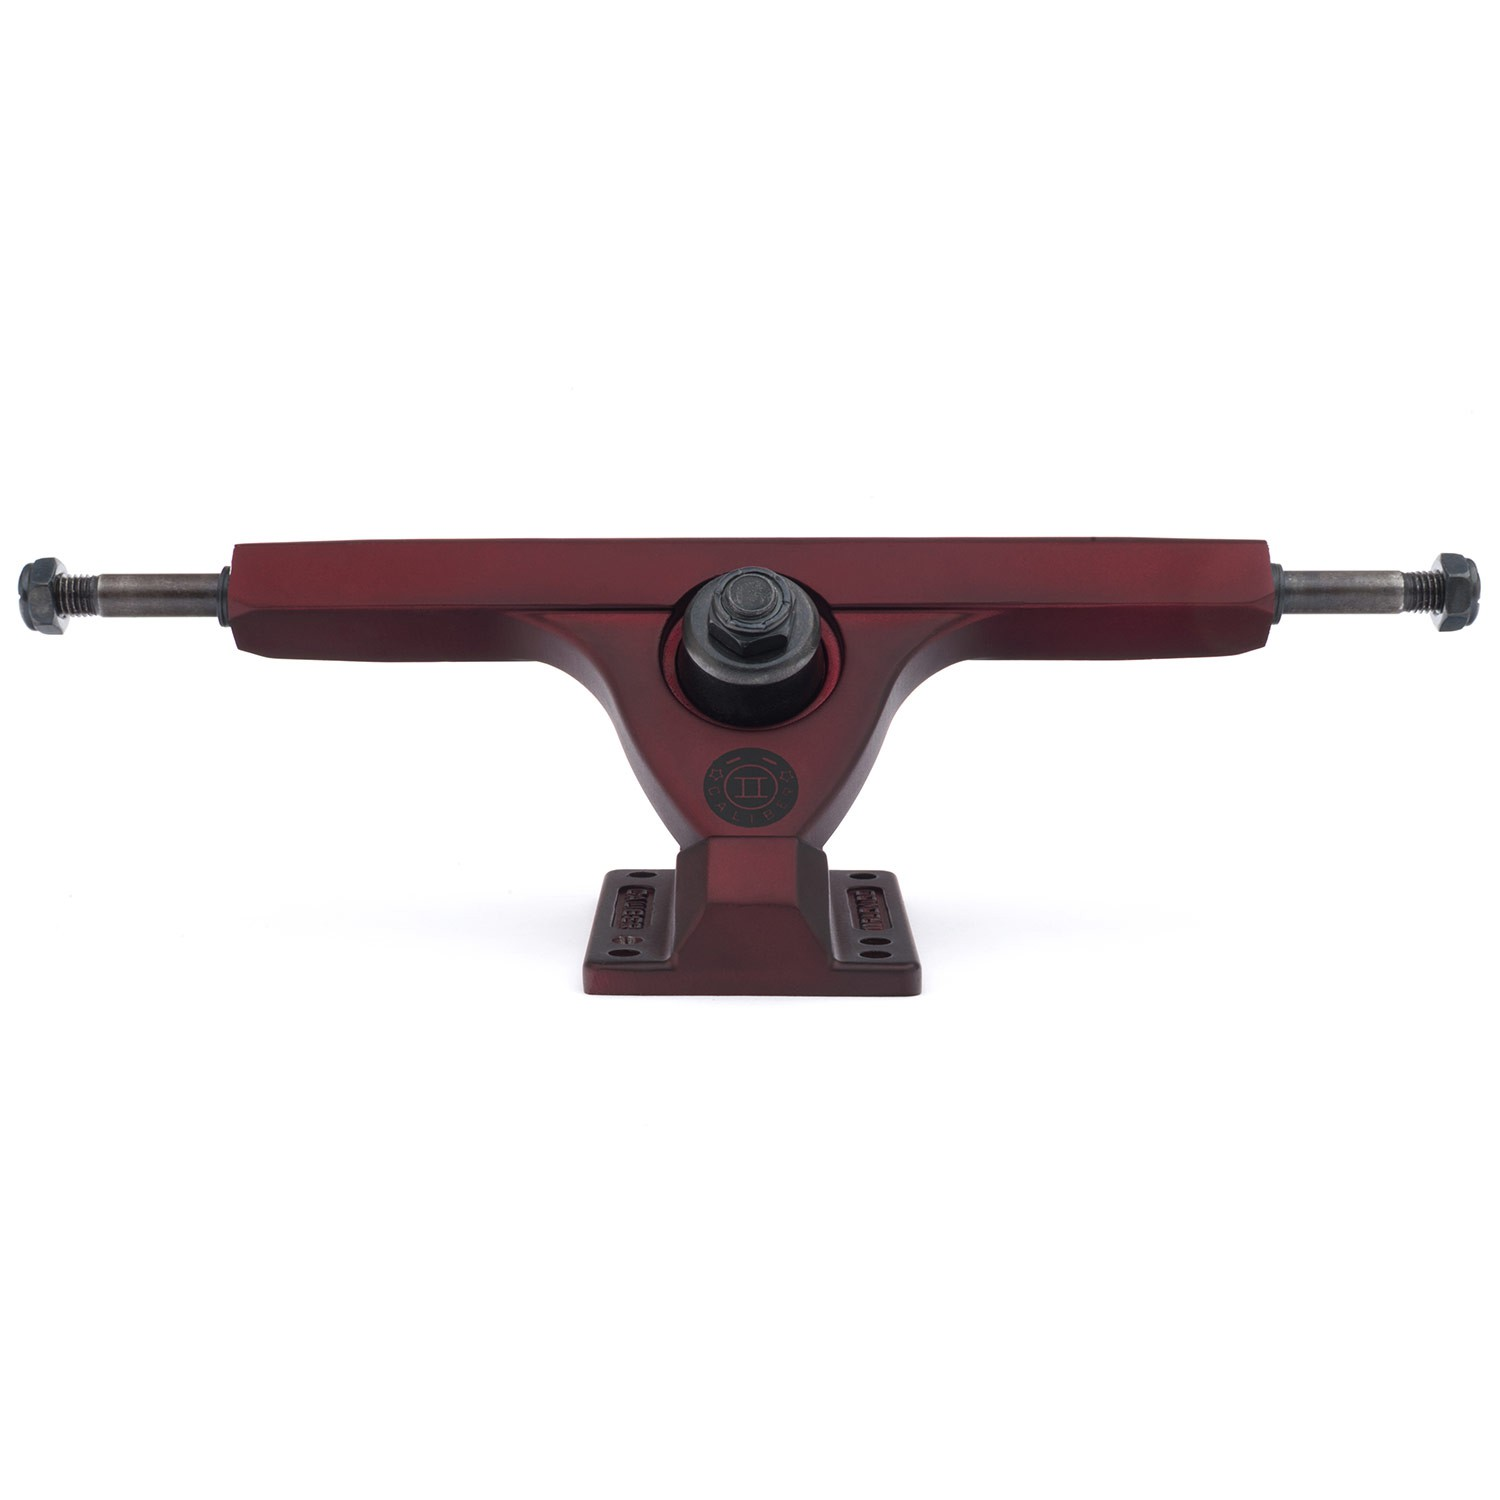 Longboard truck Caliber Caliber II 184mm 50° - midnight satin red - longboard treky